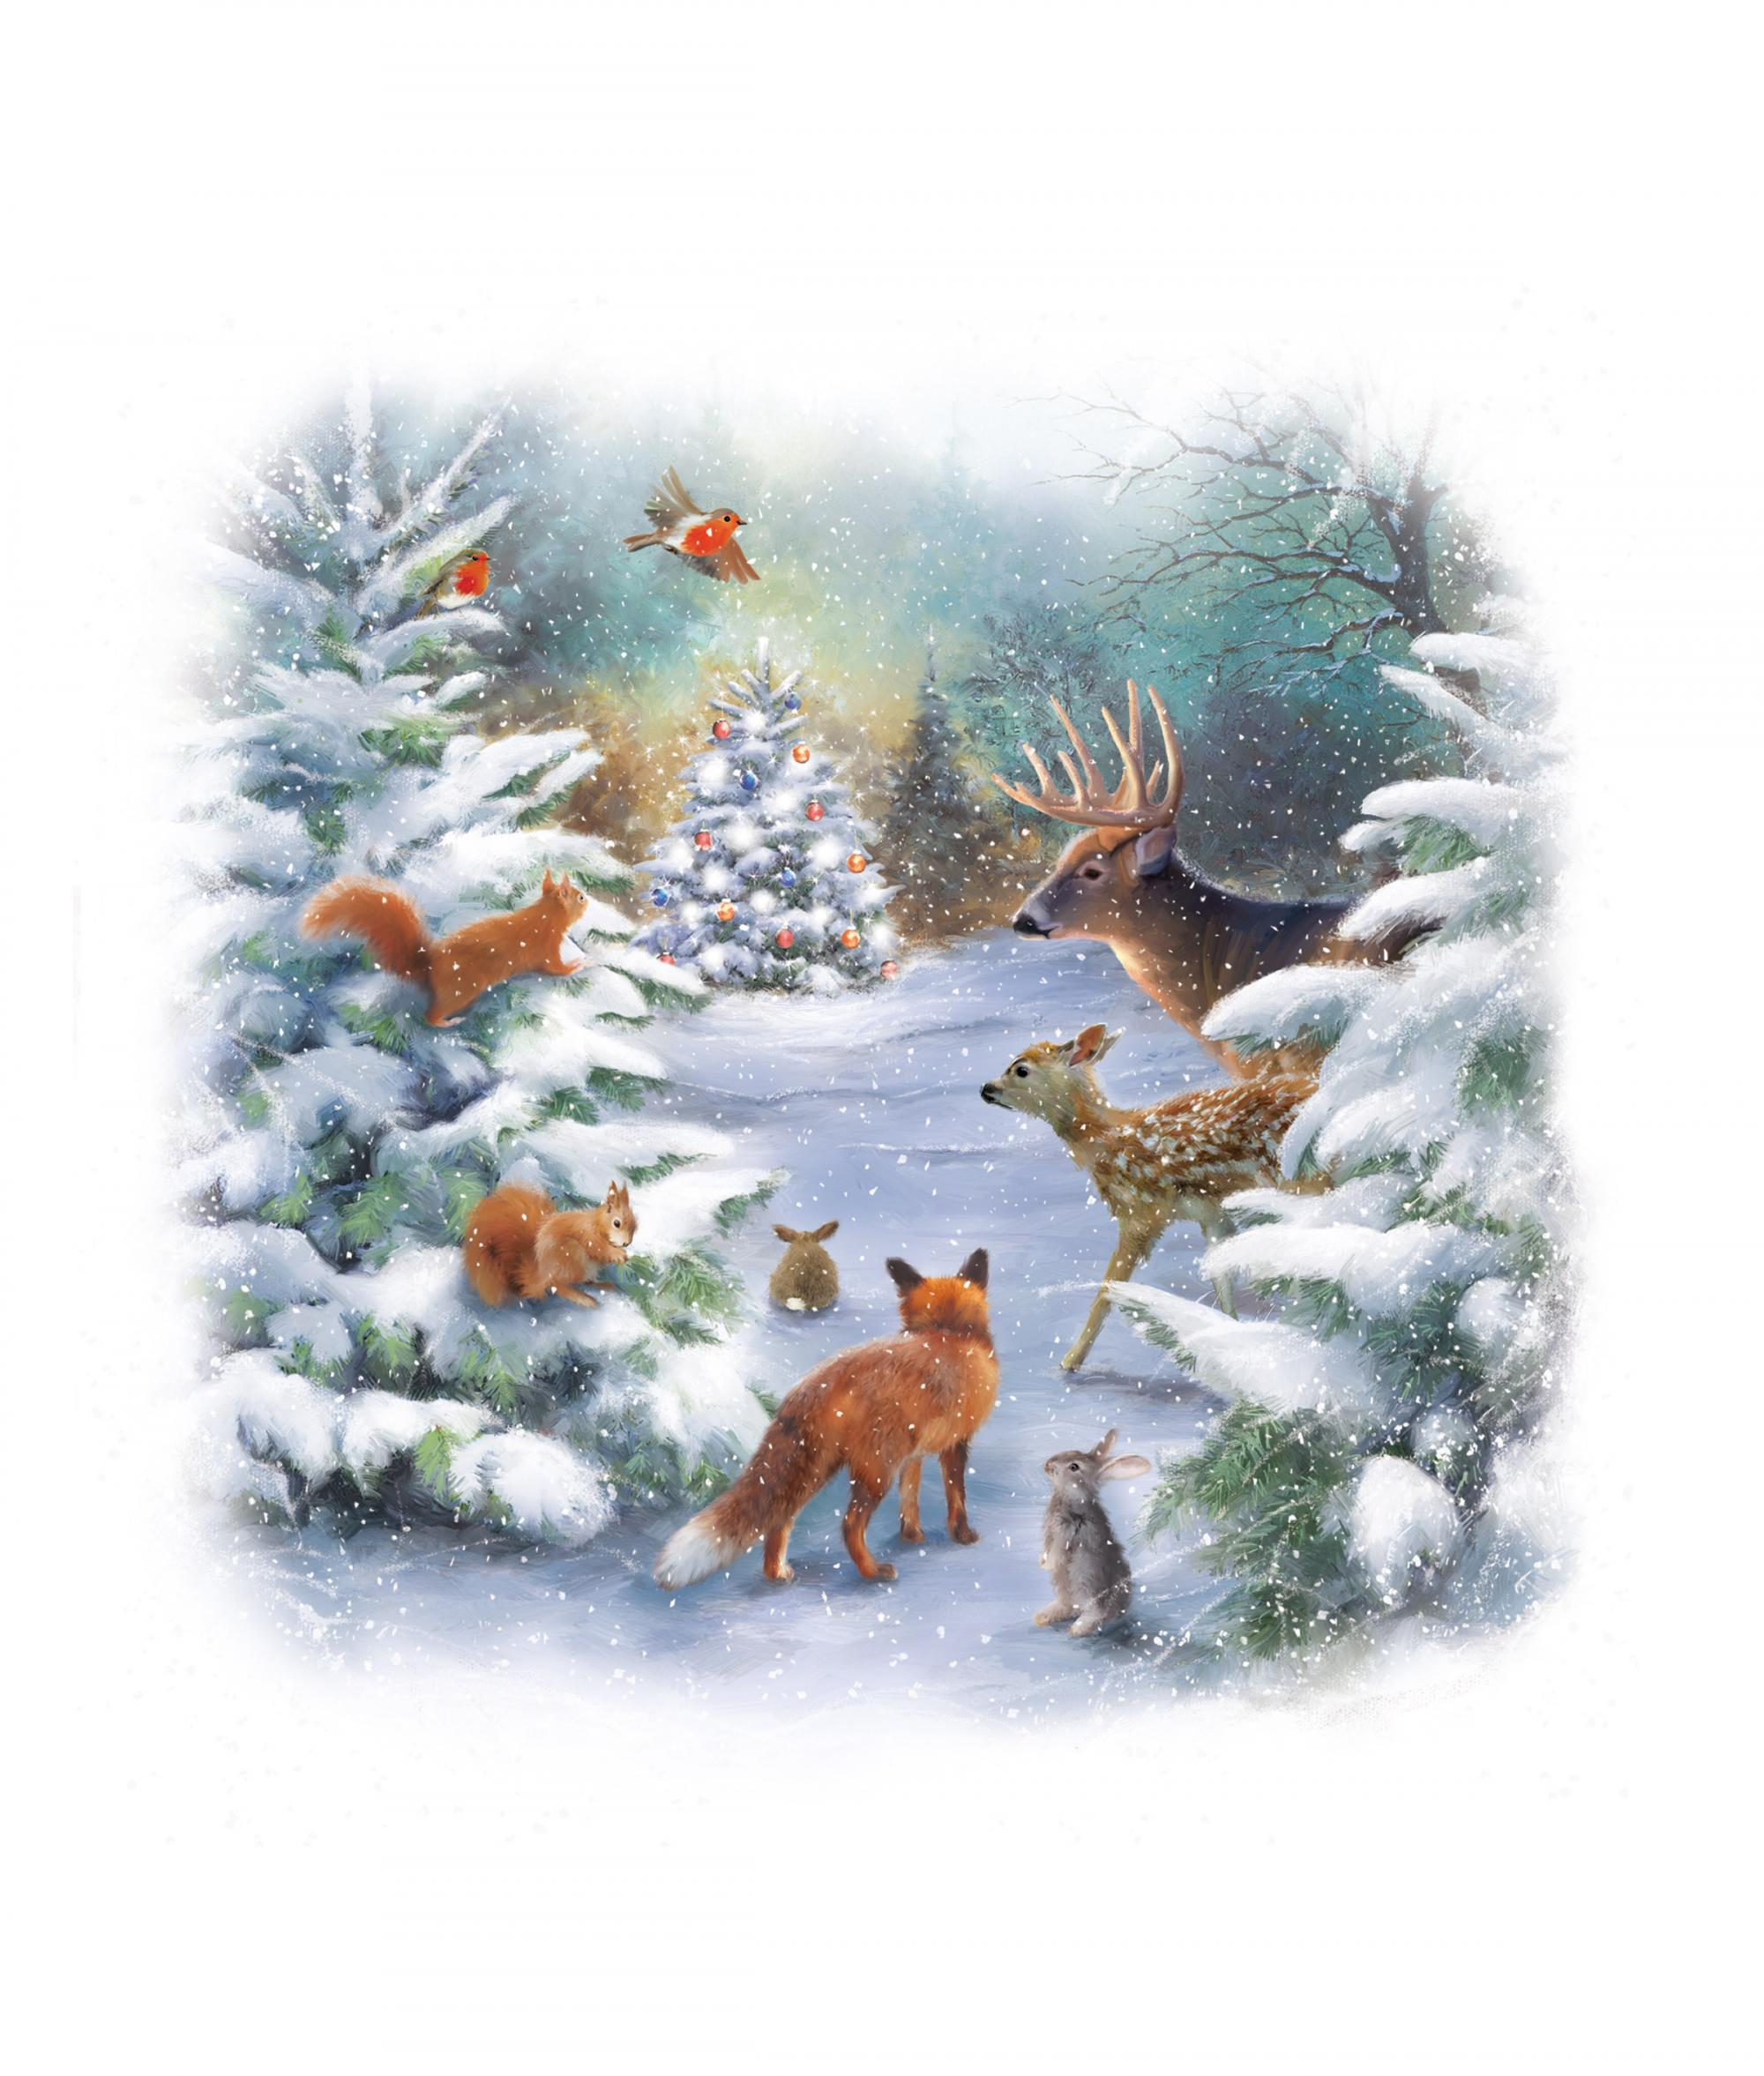 Woodland Christmas Card - Pack of 10 | Cancer Research UK Online Shop